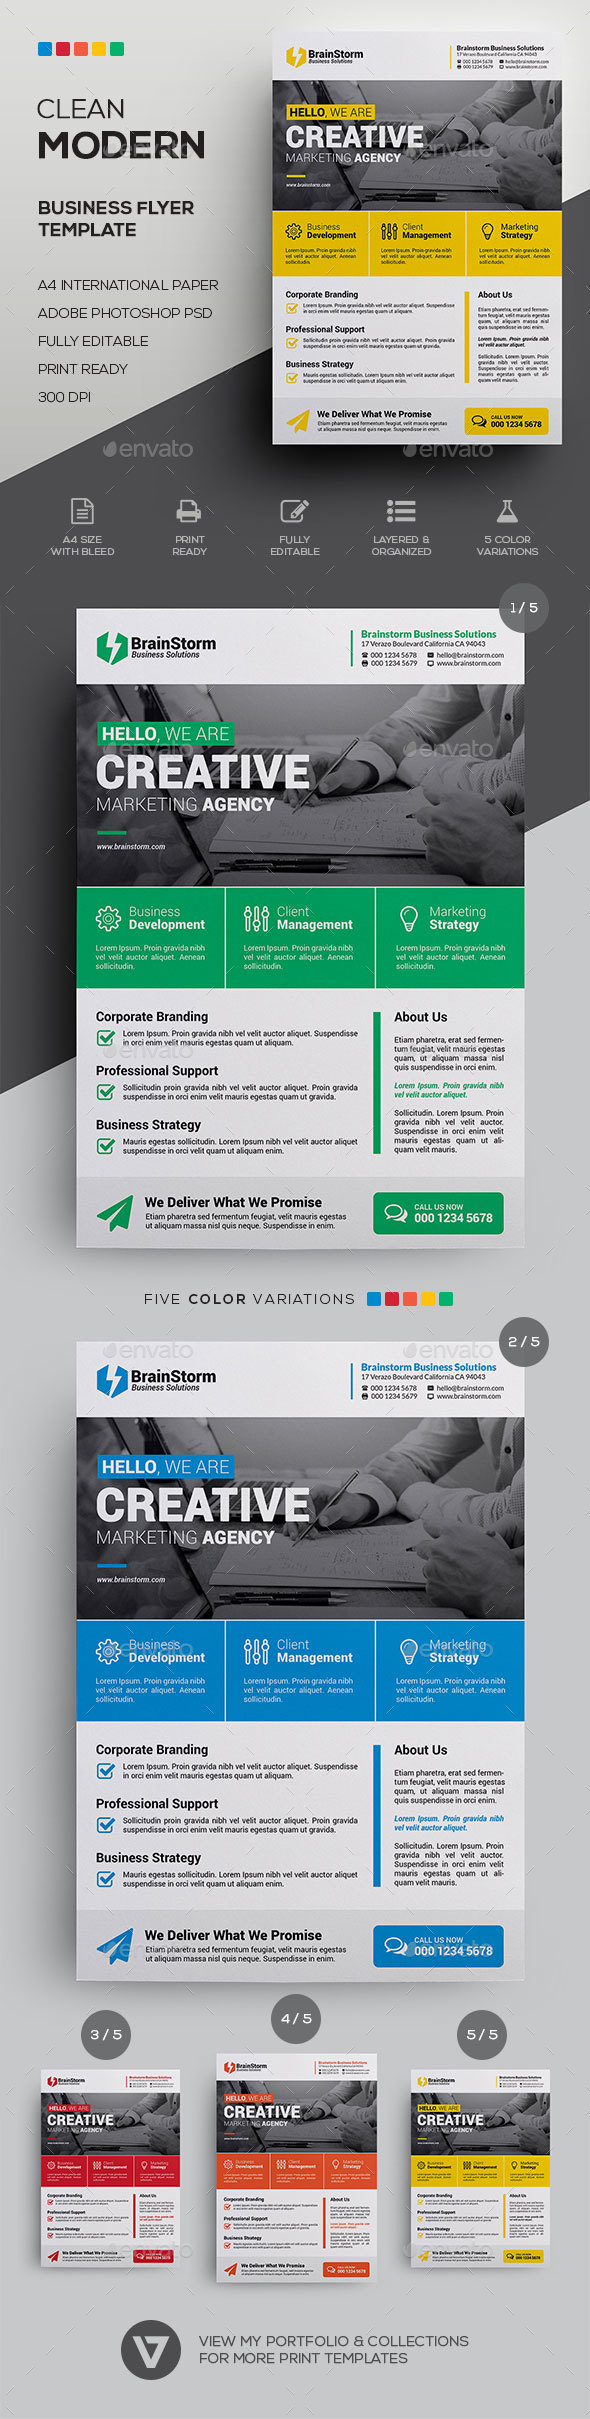 10+ Corporate Business Flyer Designs & Templates – PSD, AI